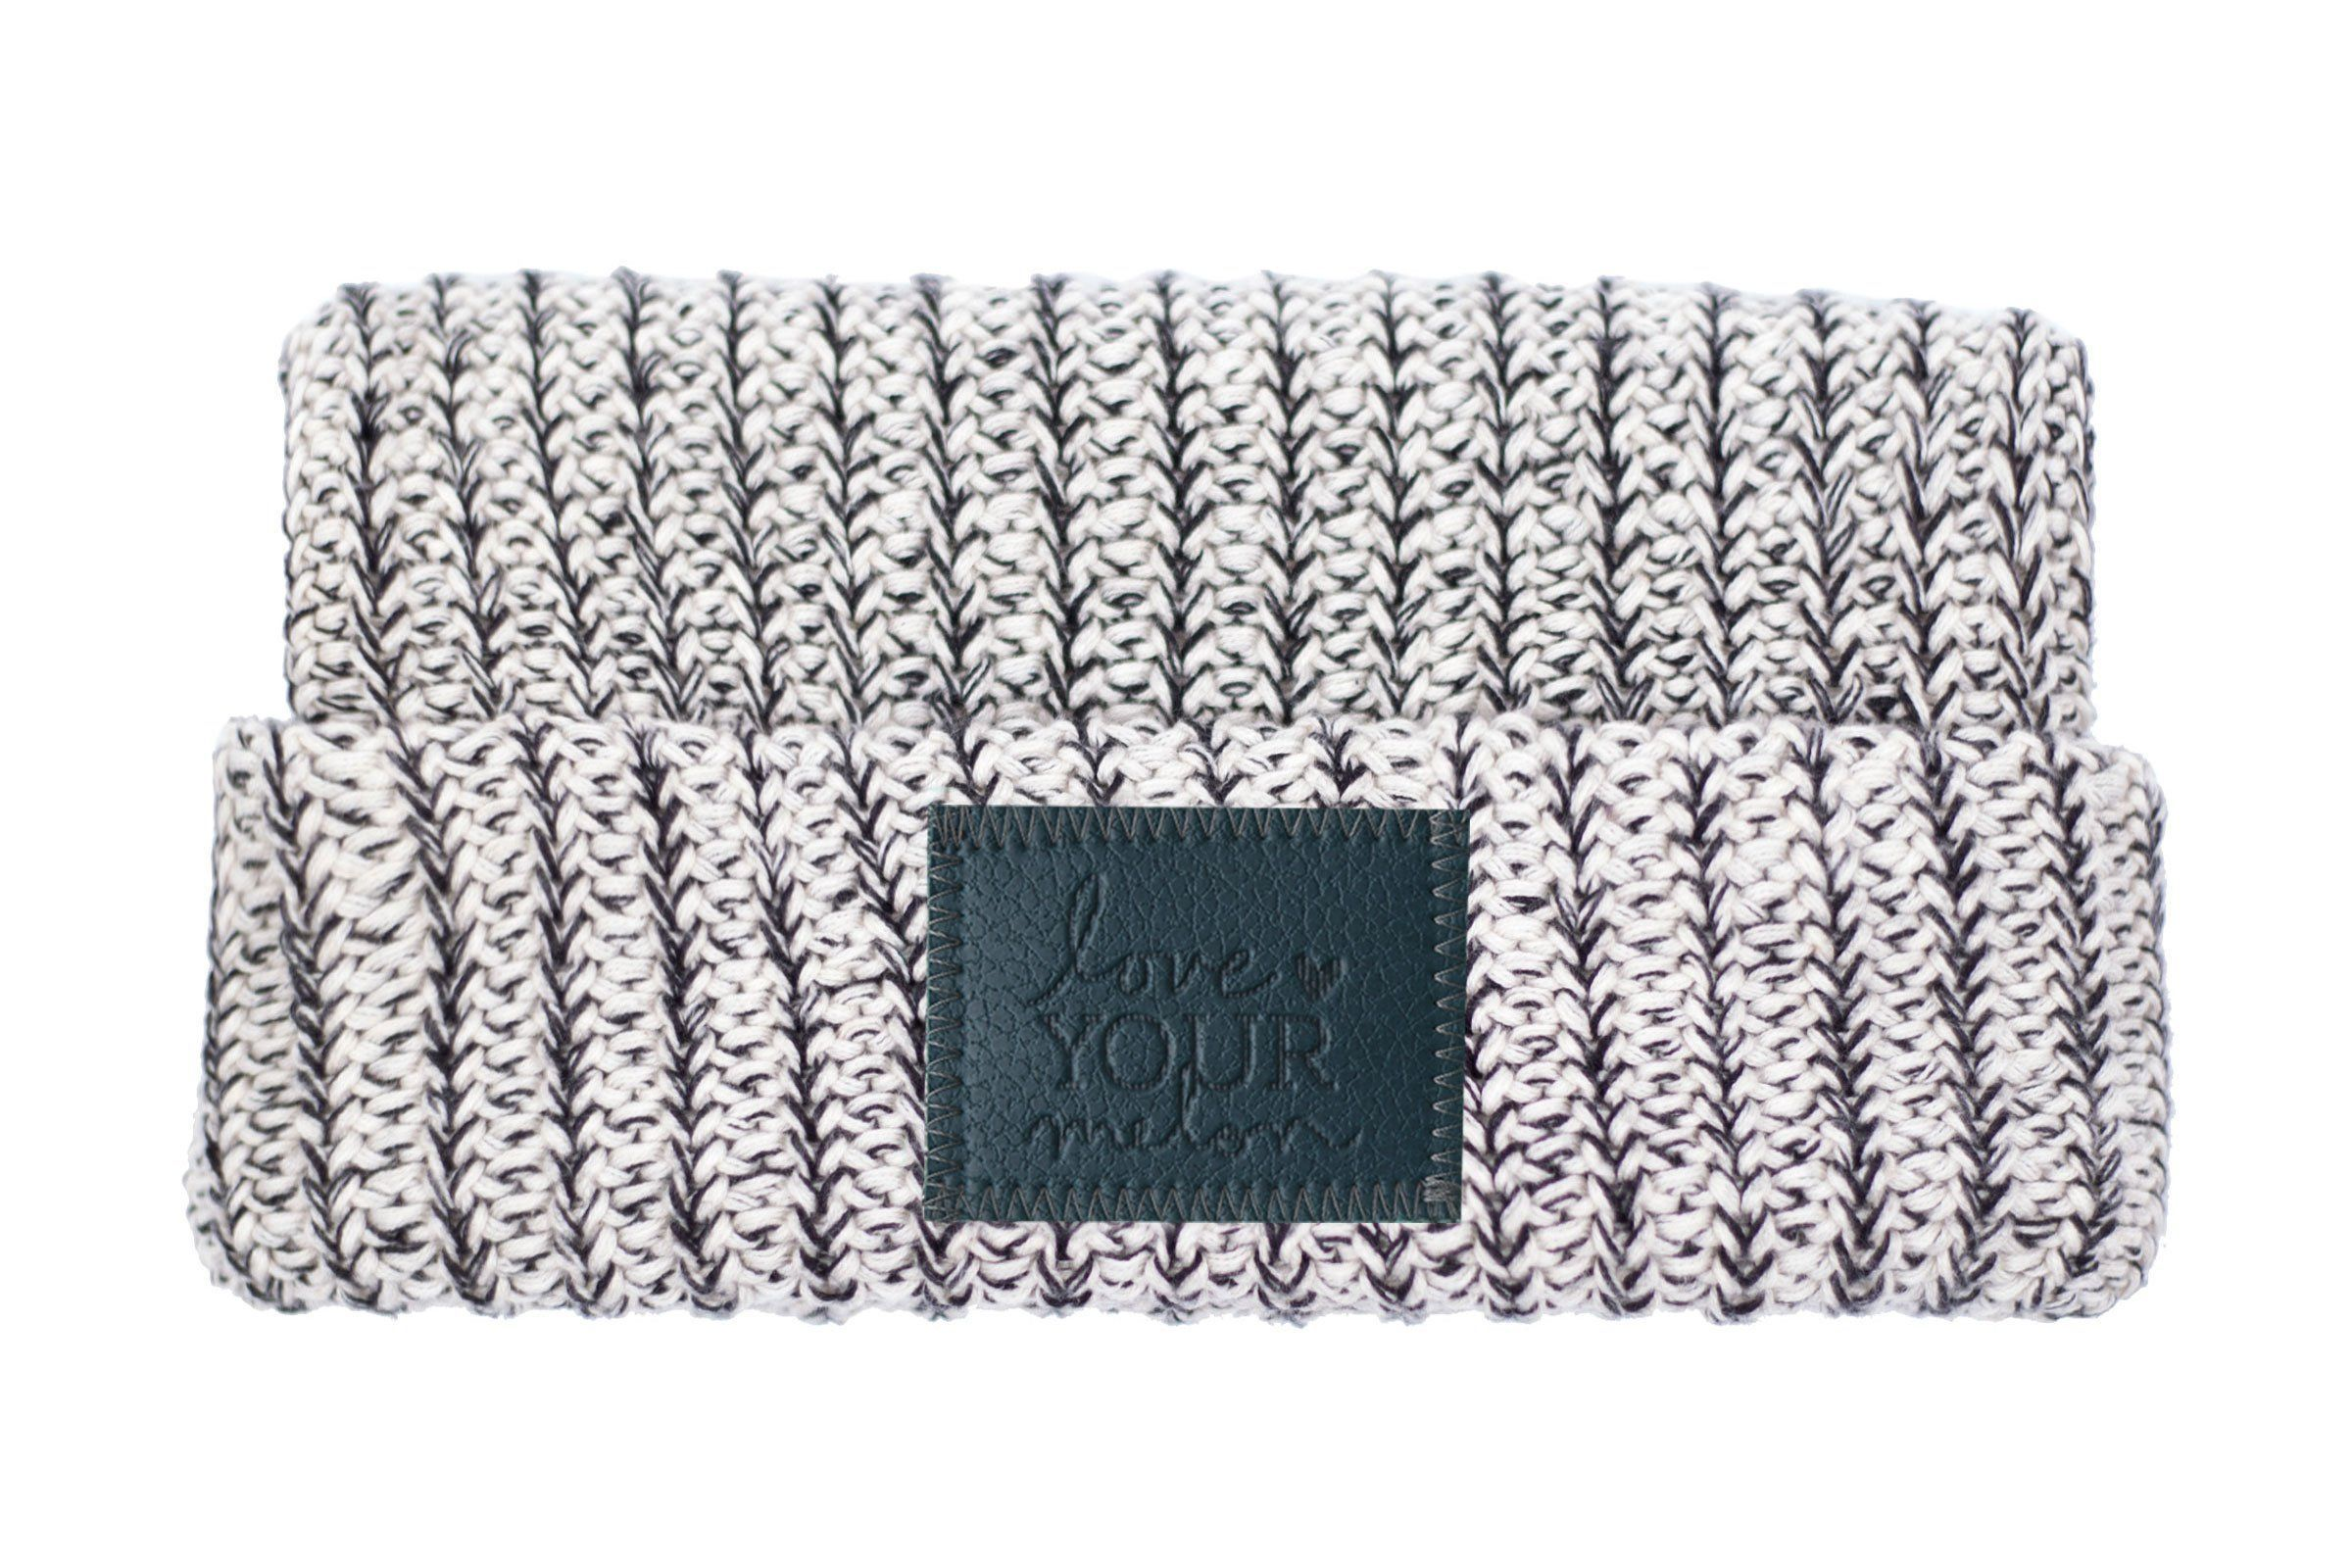 Black Speckled Cuffed Beanie (Faux Leather Patch)  76ff5025481